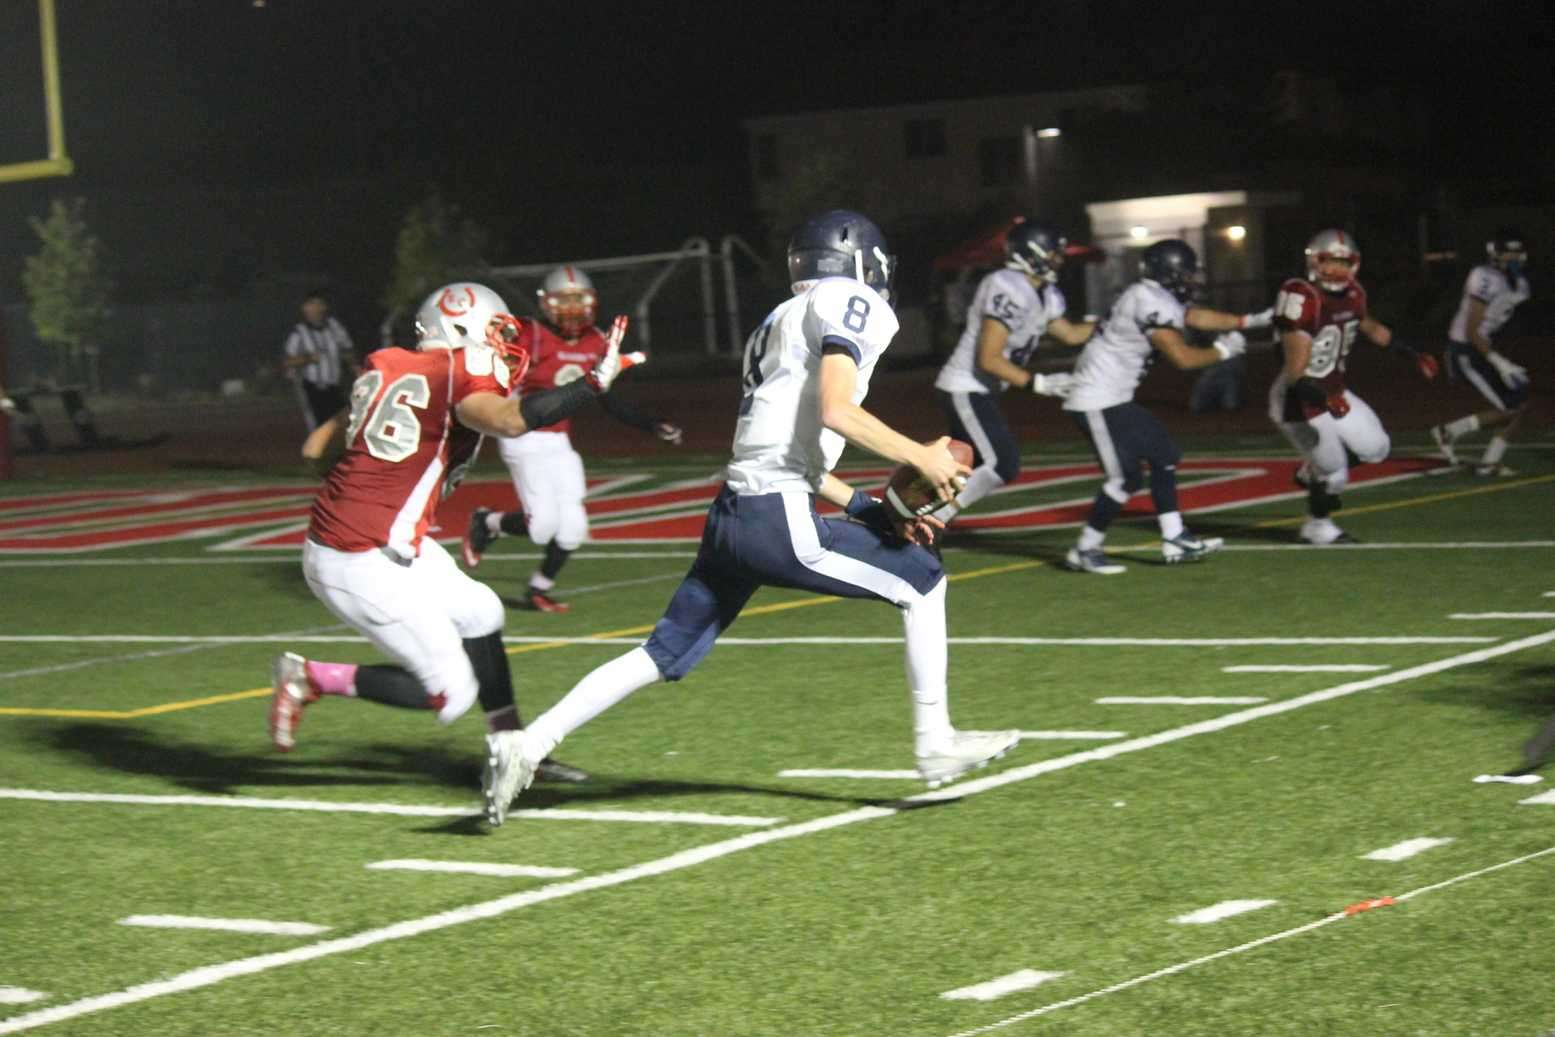 Sophomore quarterback Timmy Palthe going for the touchdown.